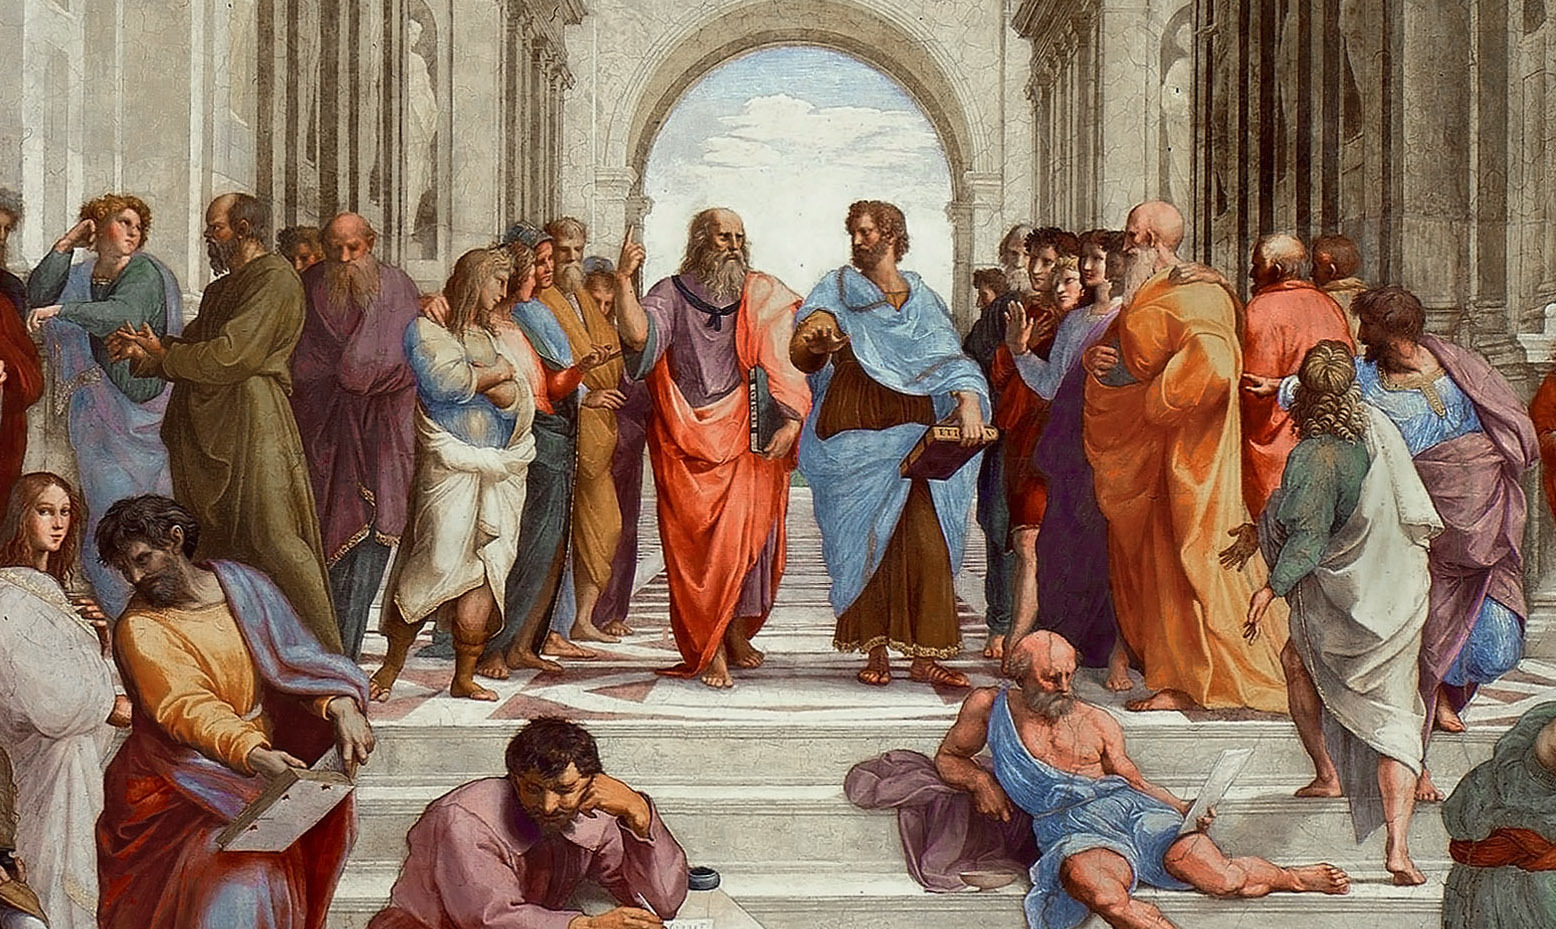 athens essay Why athens is better than sparta in athens, an understanding of the world and the arts is just as important as military strength yet in both persian wars, athens led.